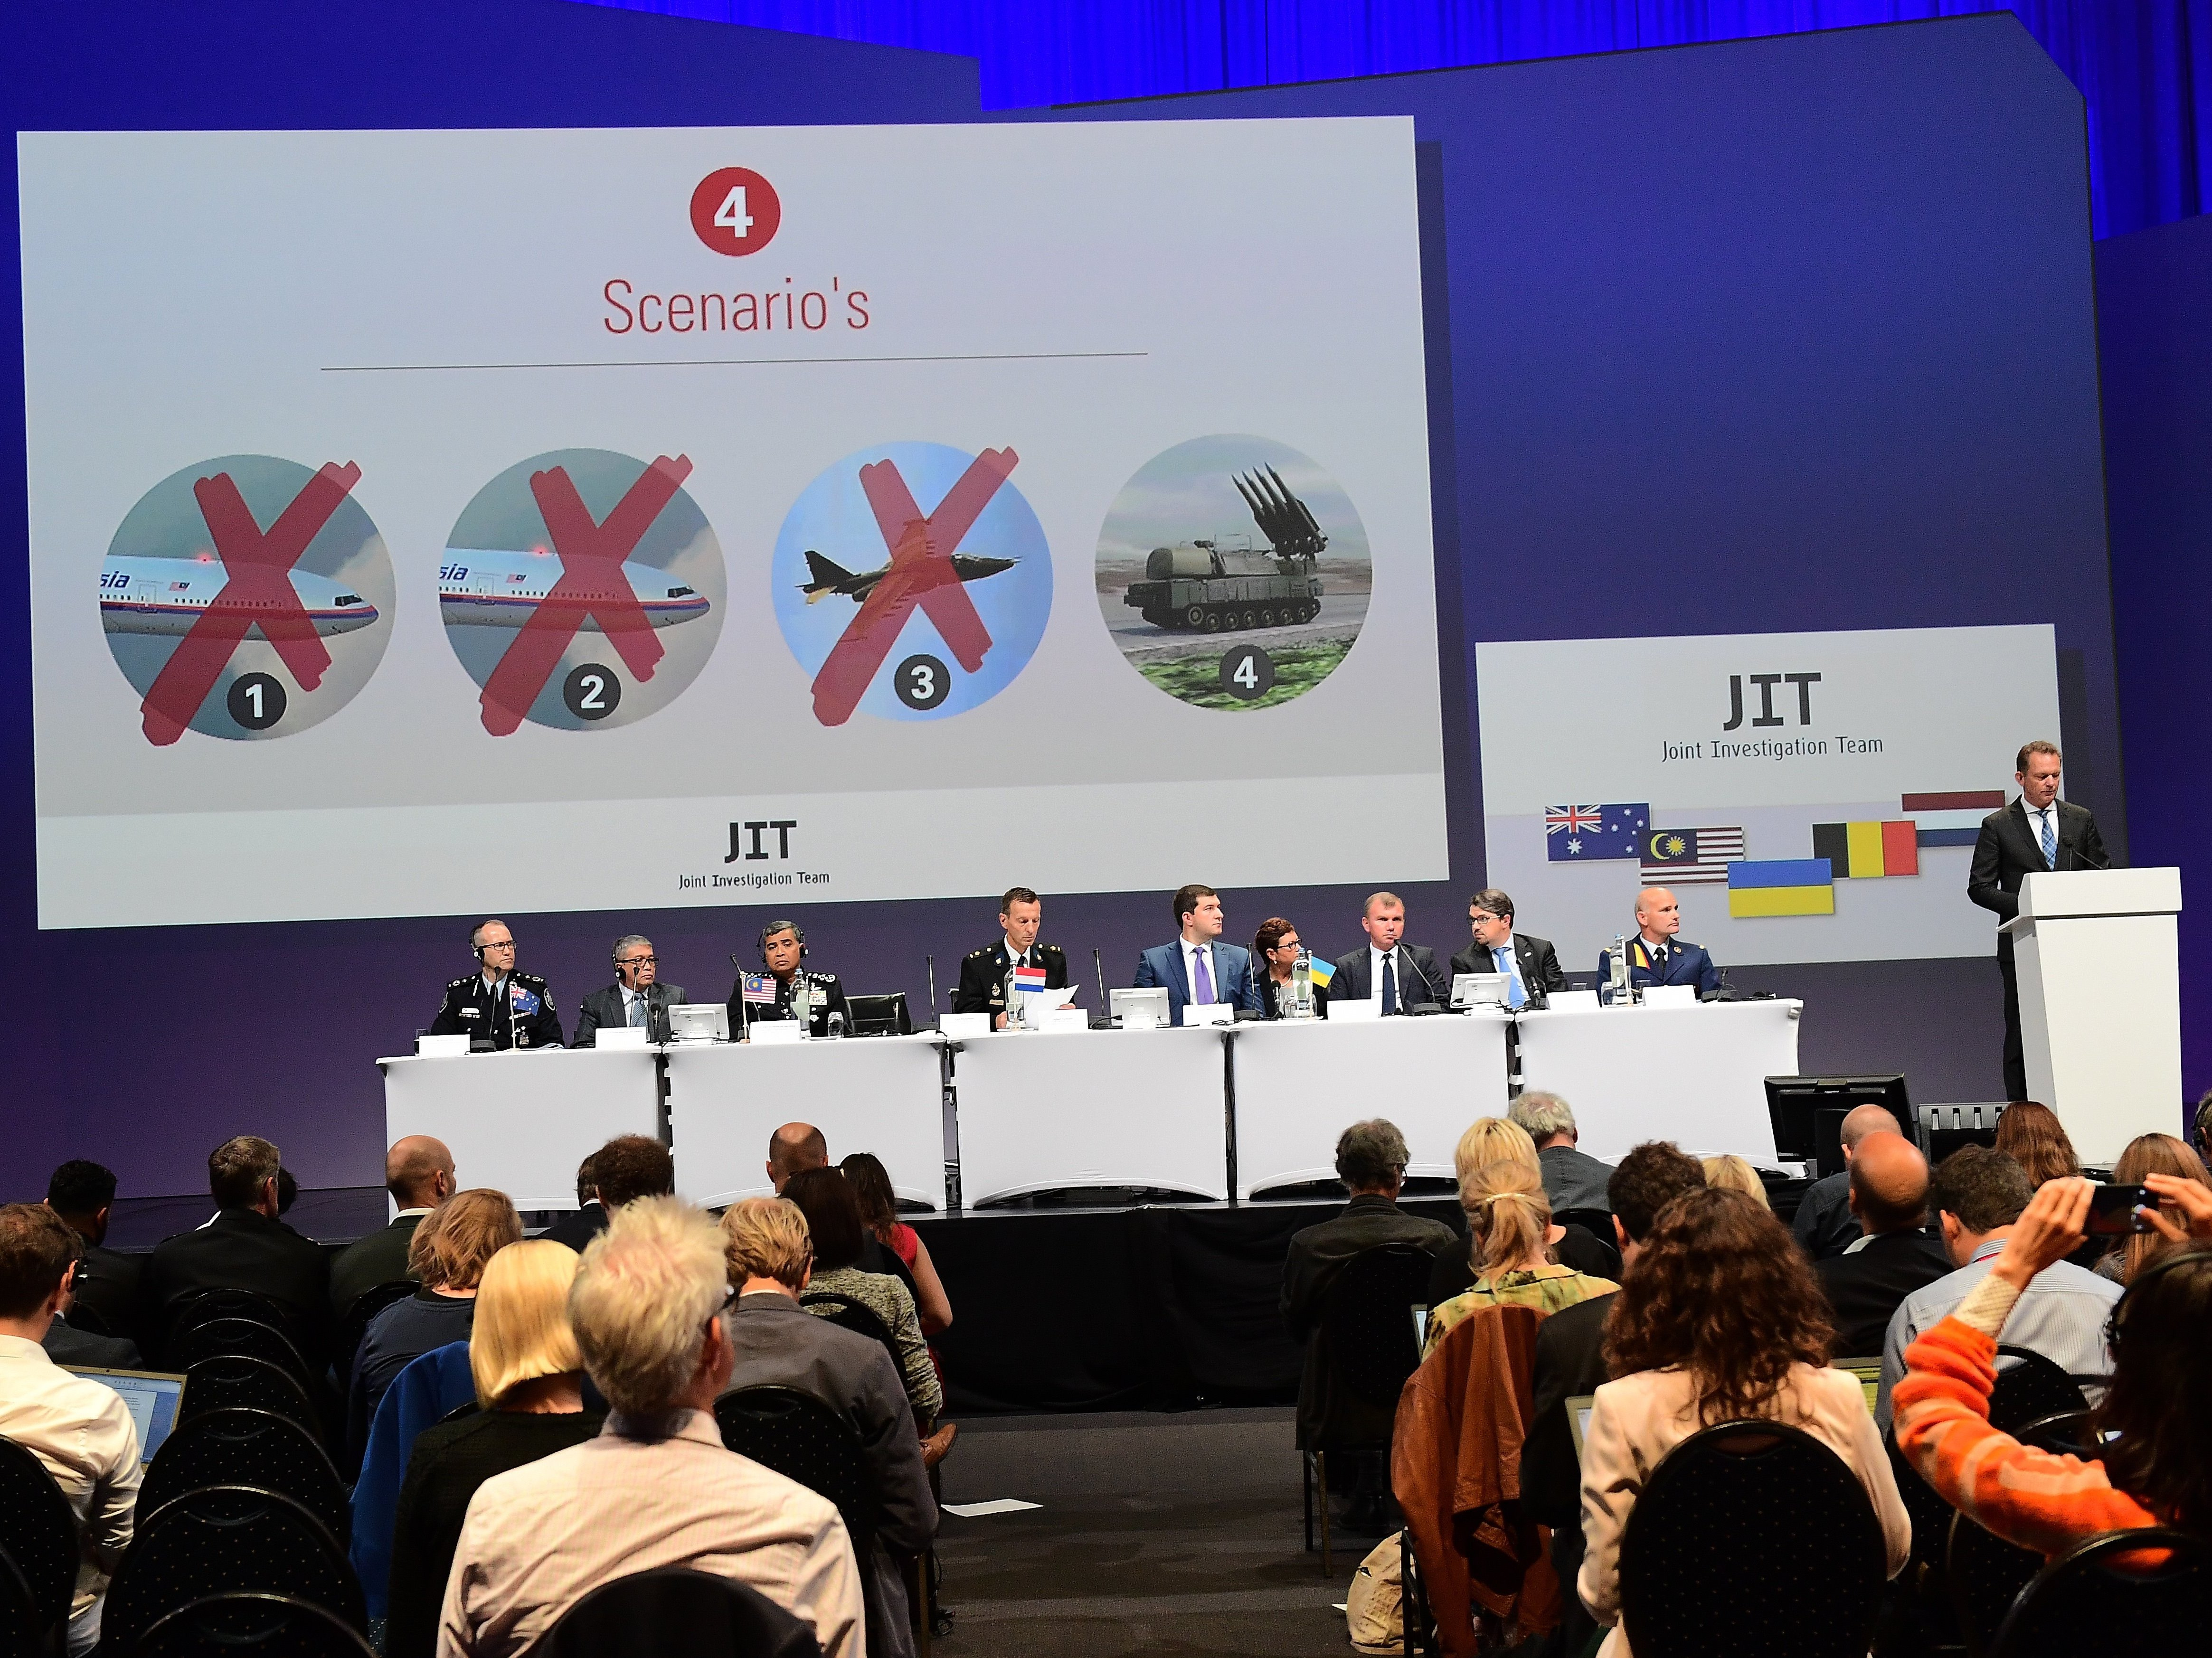 Russia calls probe into MH17 downing 'biased'